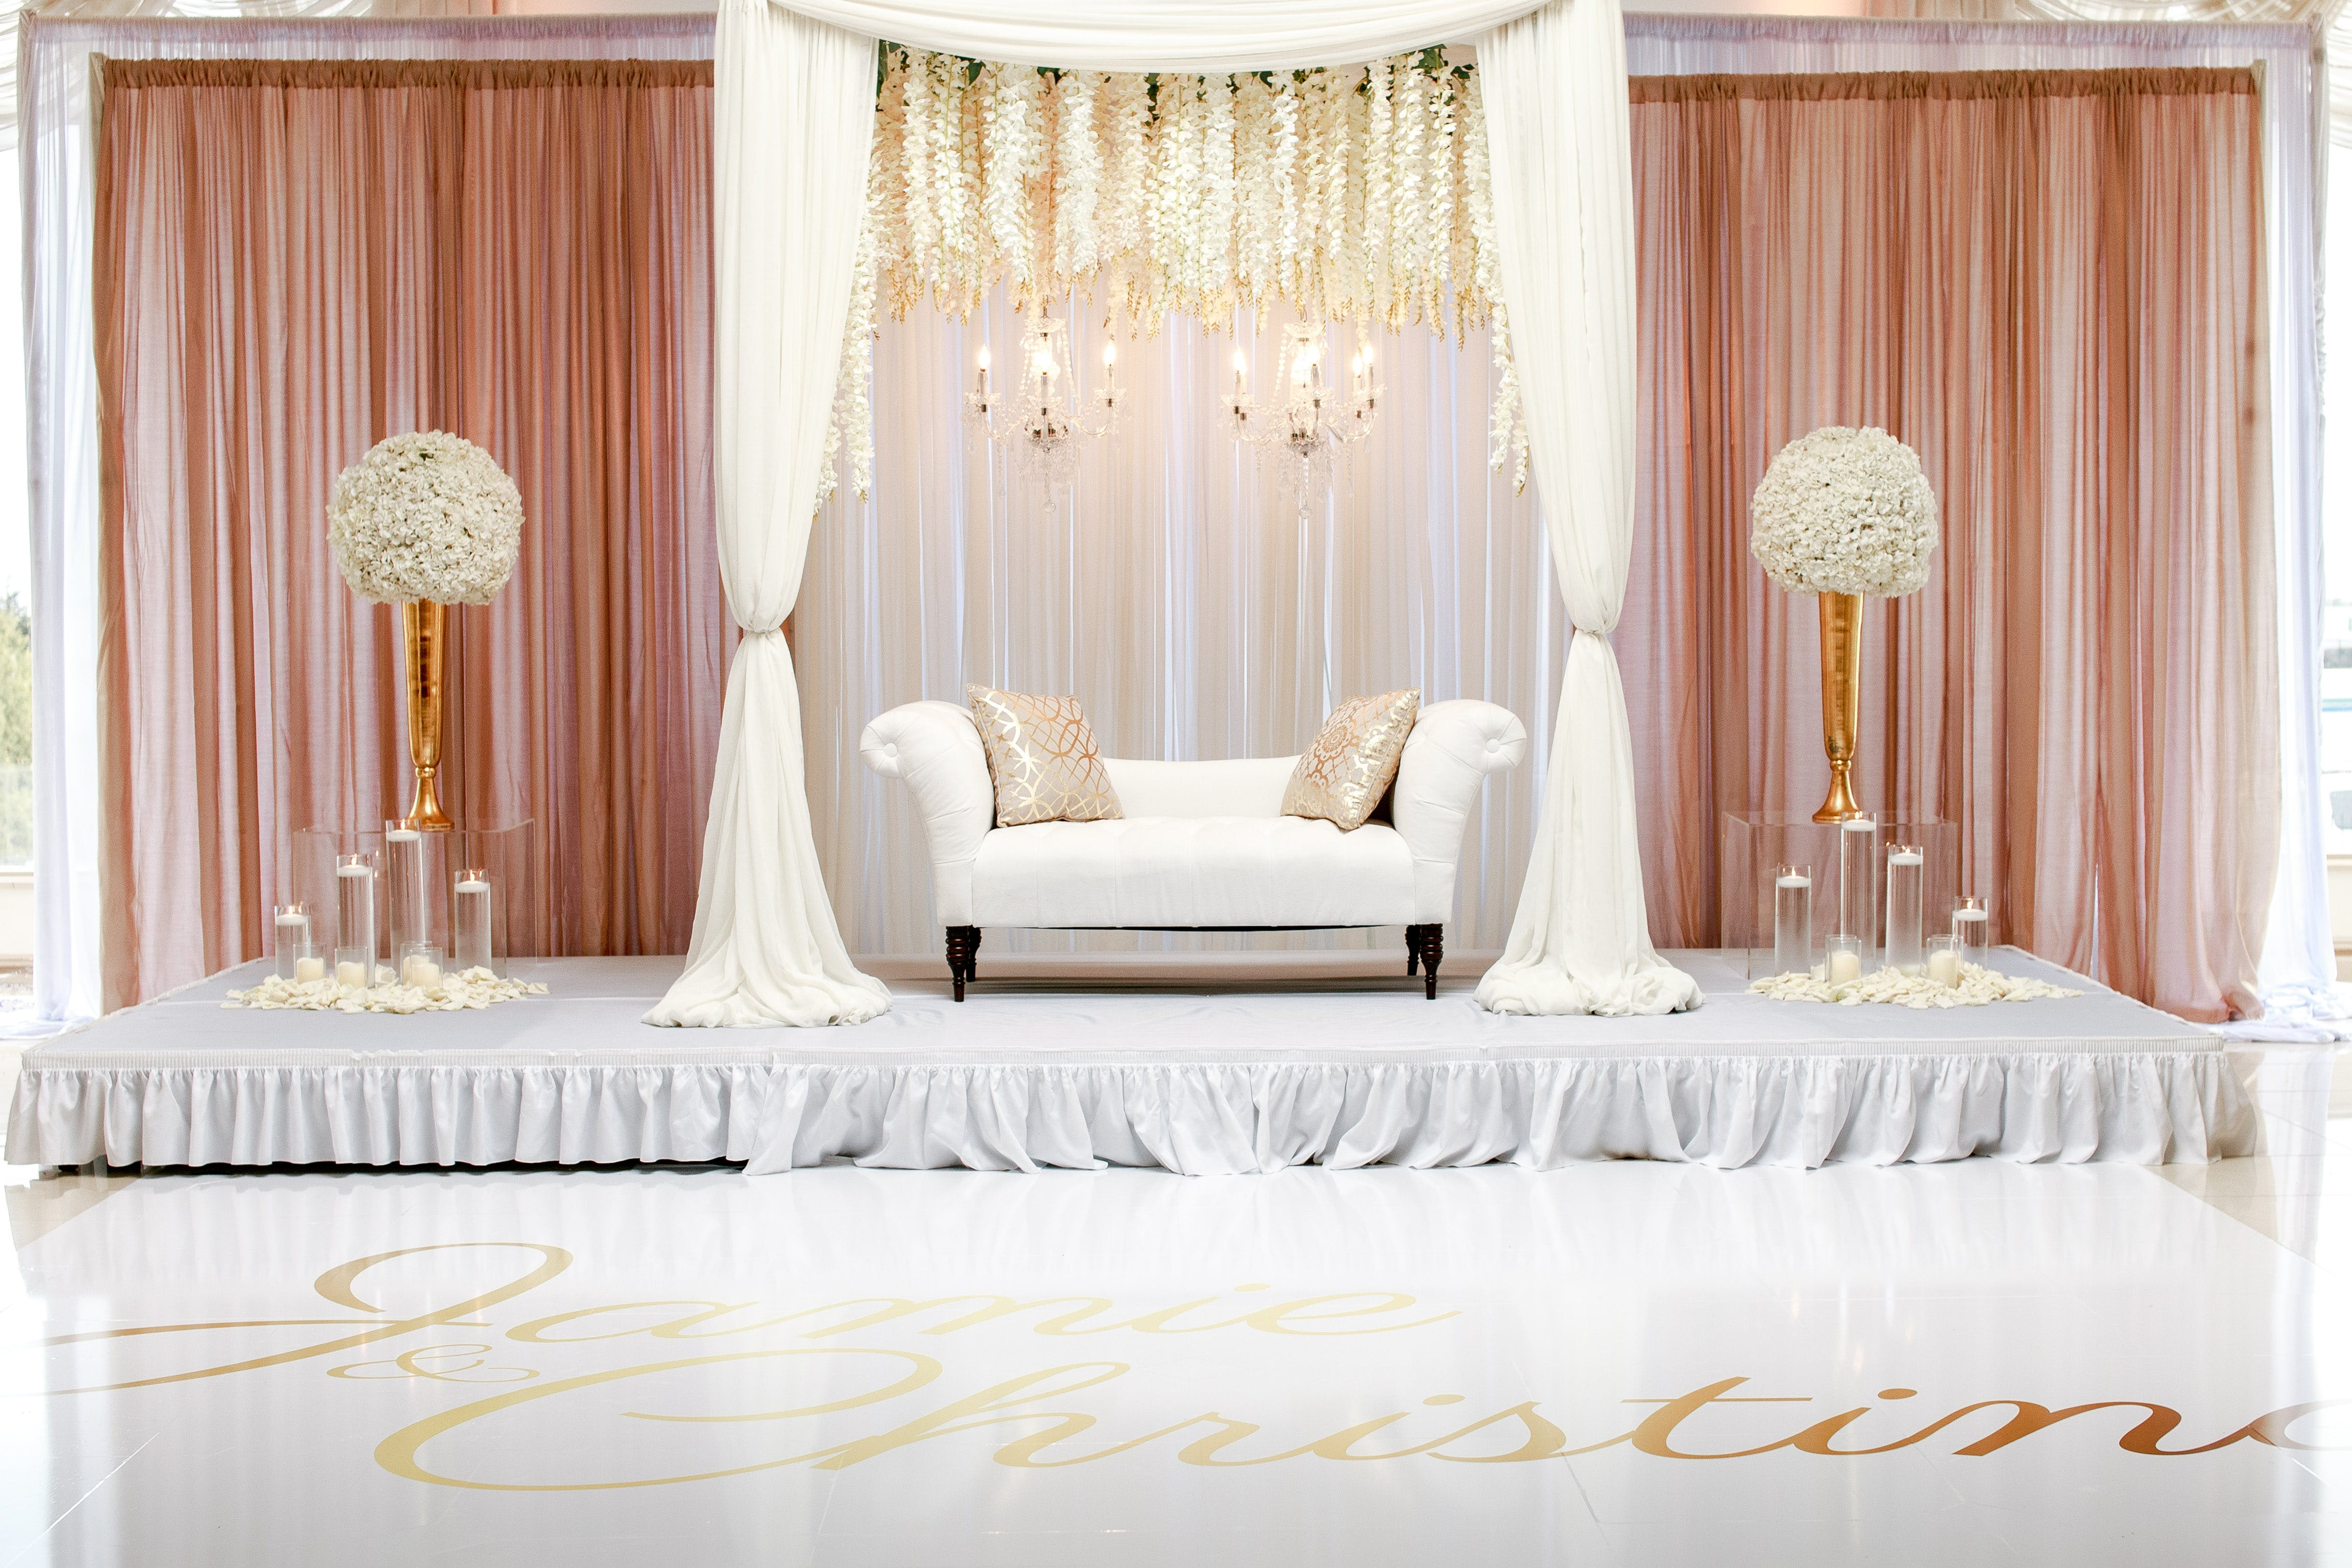 White Fabric Loveseat With Two Flower Centerpieces on the Side